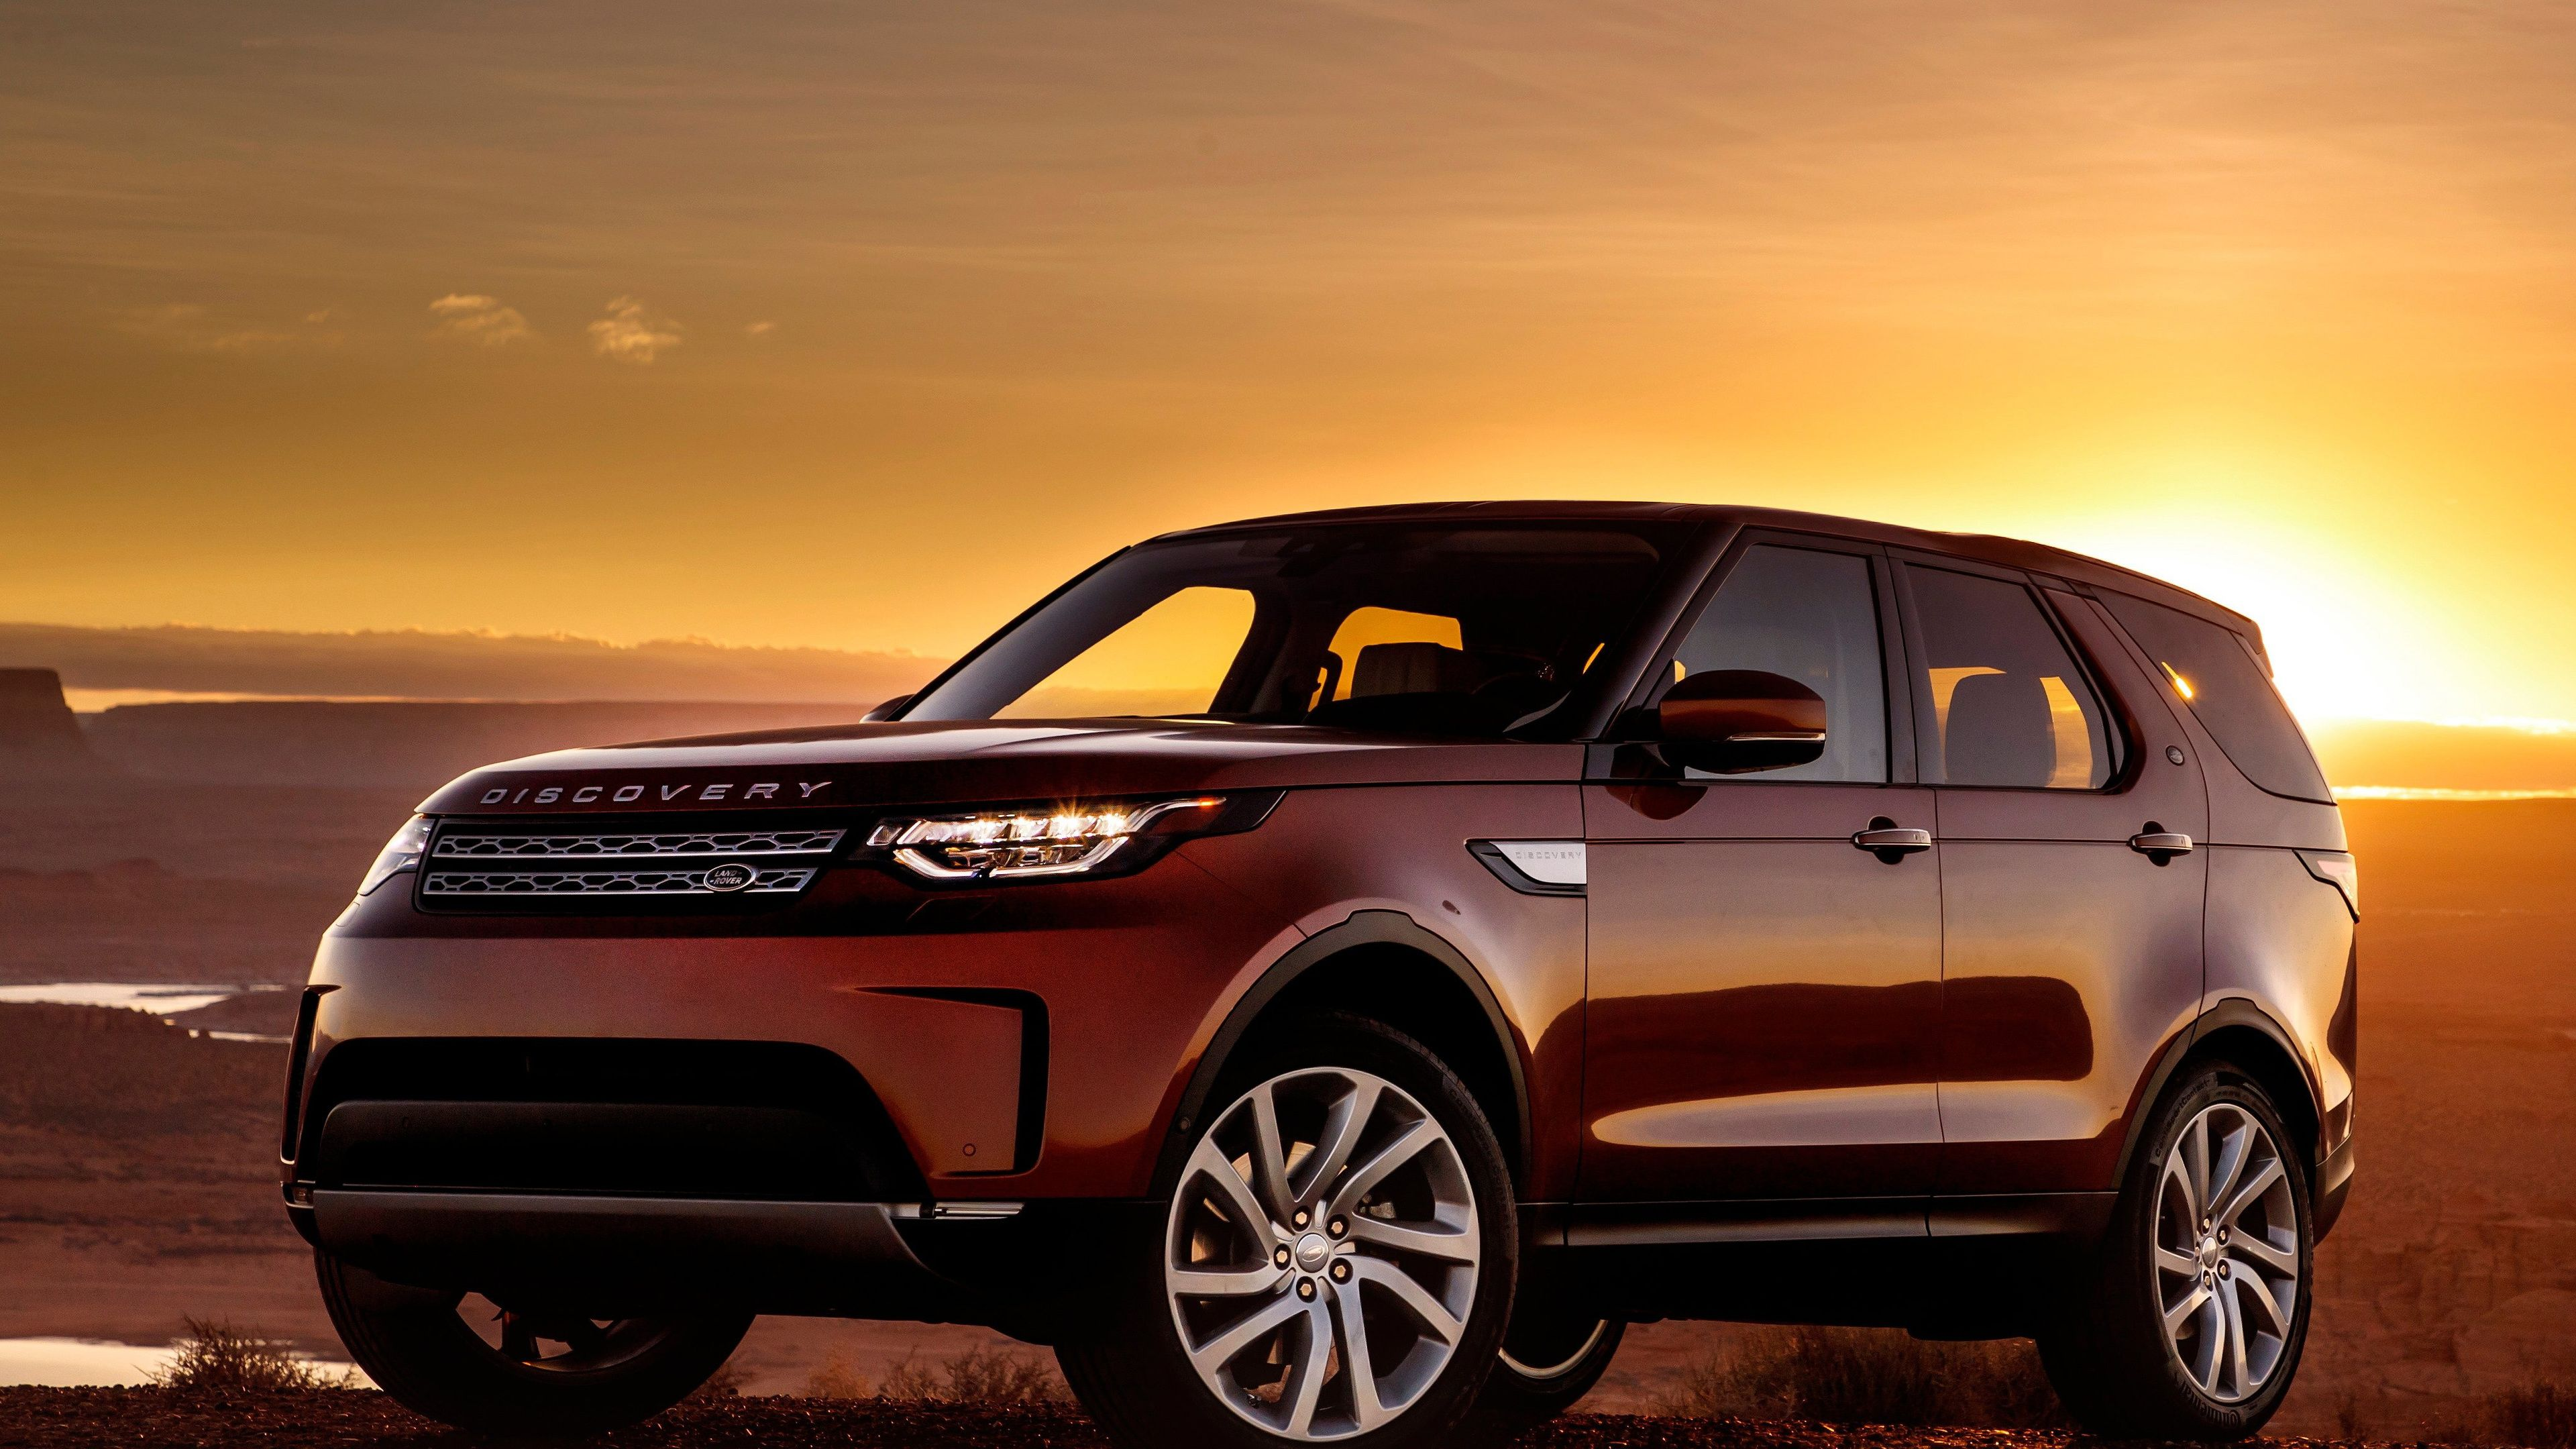 2017 Land Rover Discovery Land Rover Wallpapers Cars Wallpapers 2017 Cars Wallpapers Land Rover Discovery Land Rover Land Rover Discovery Sport